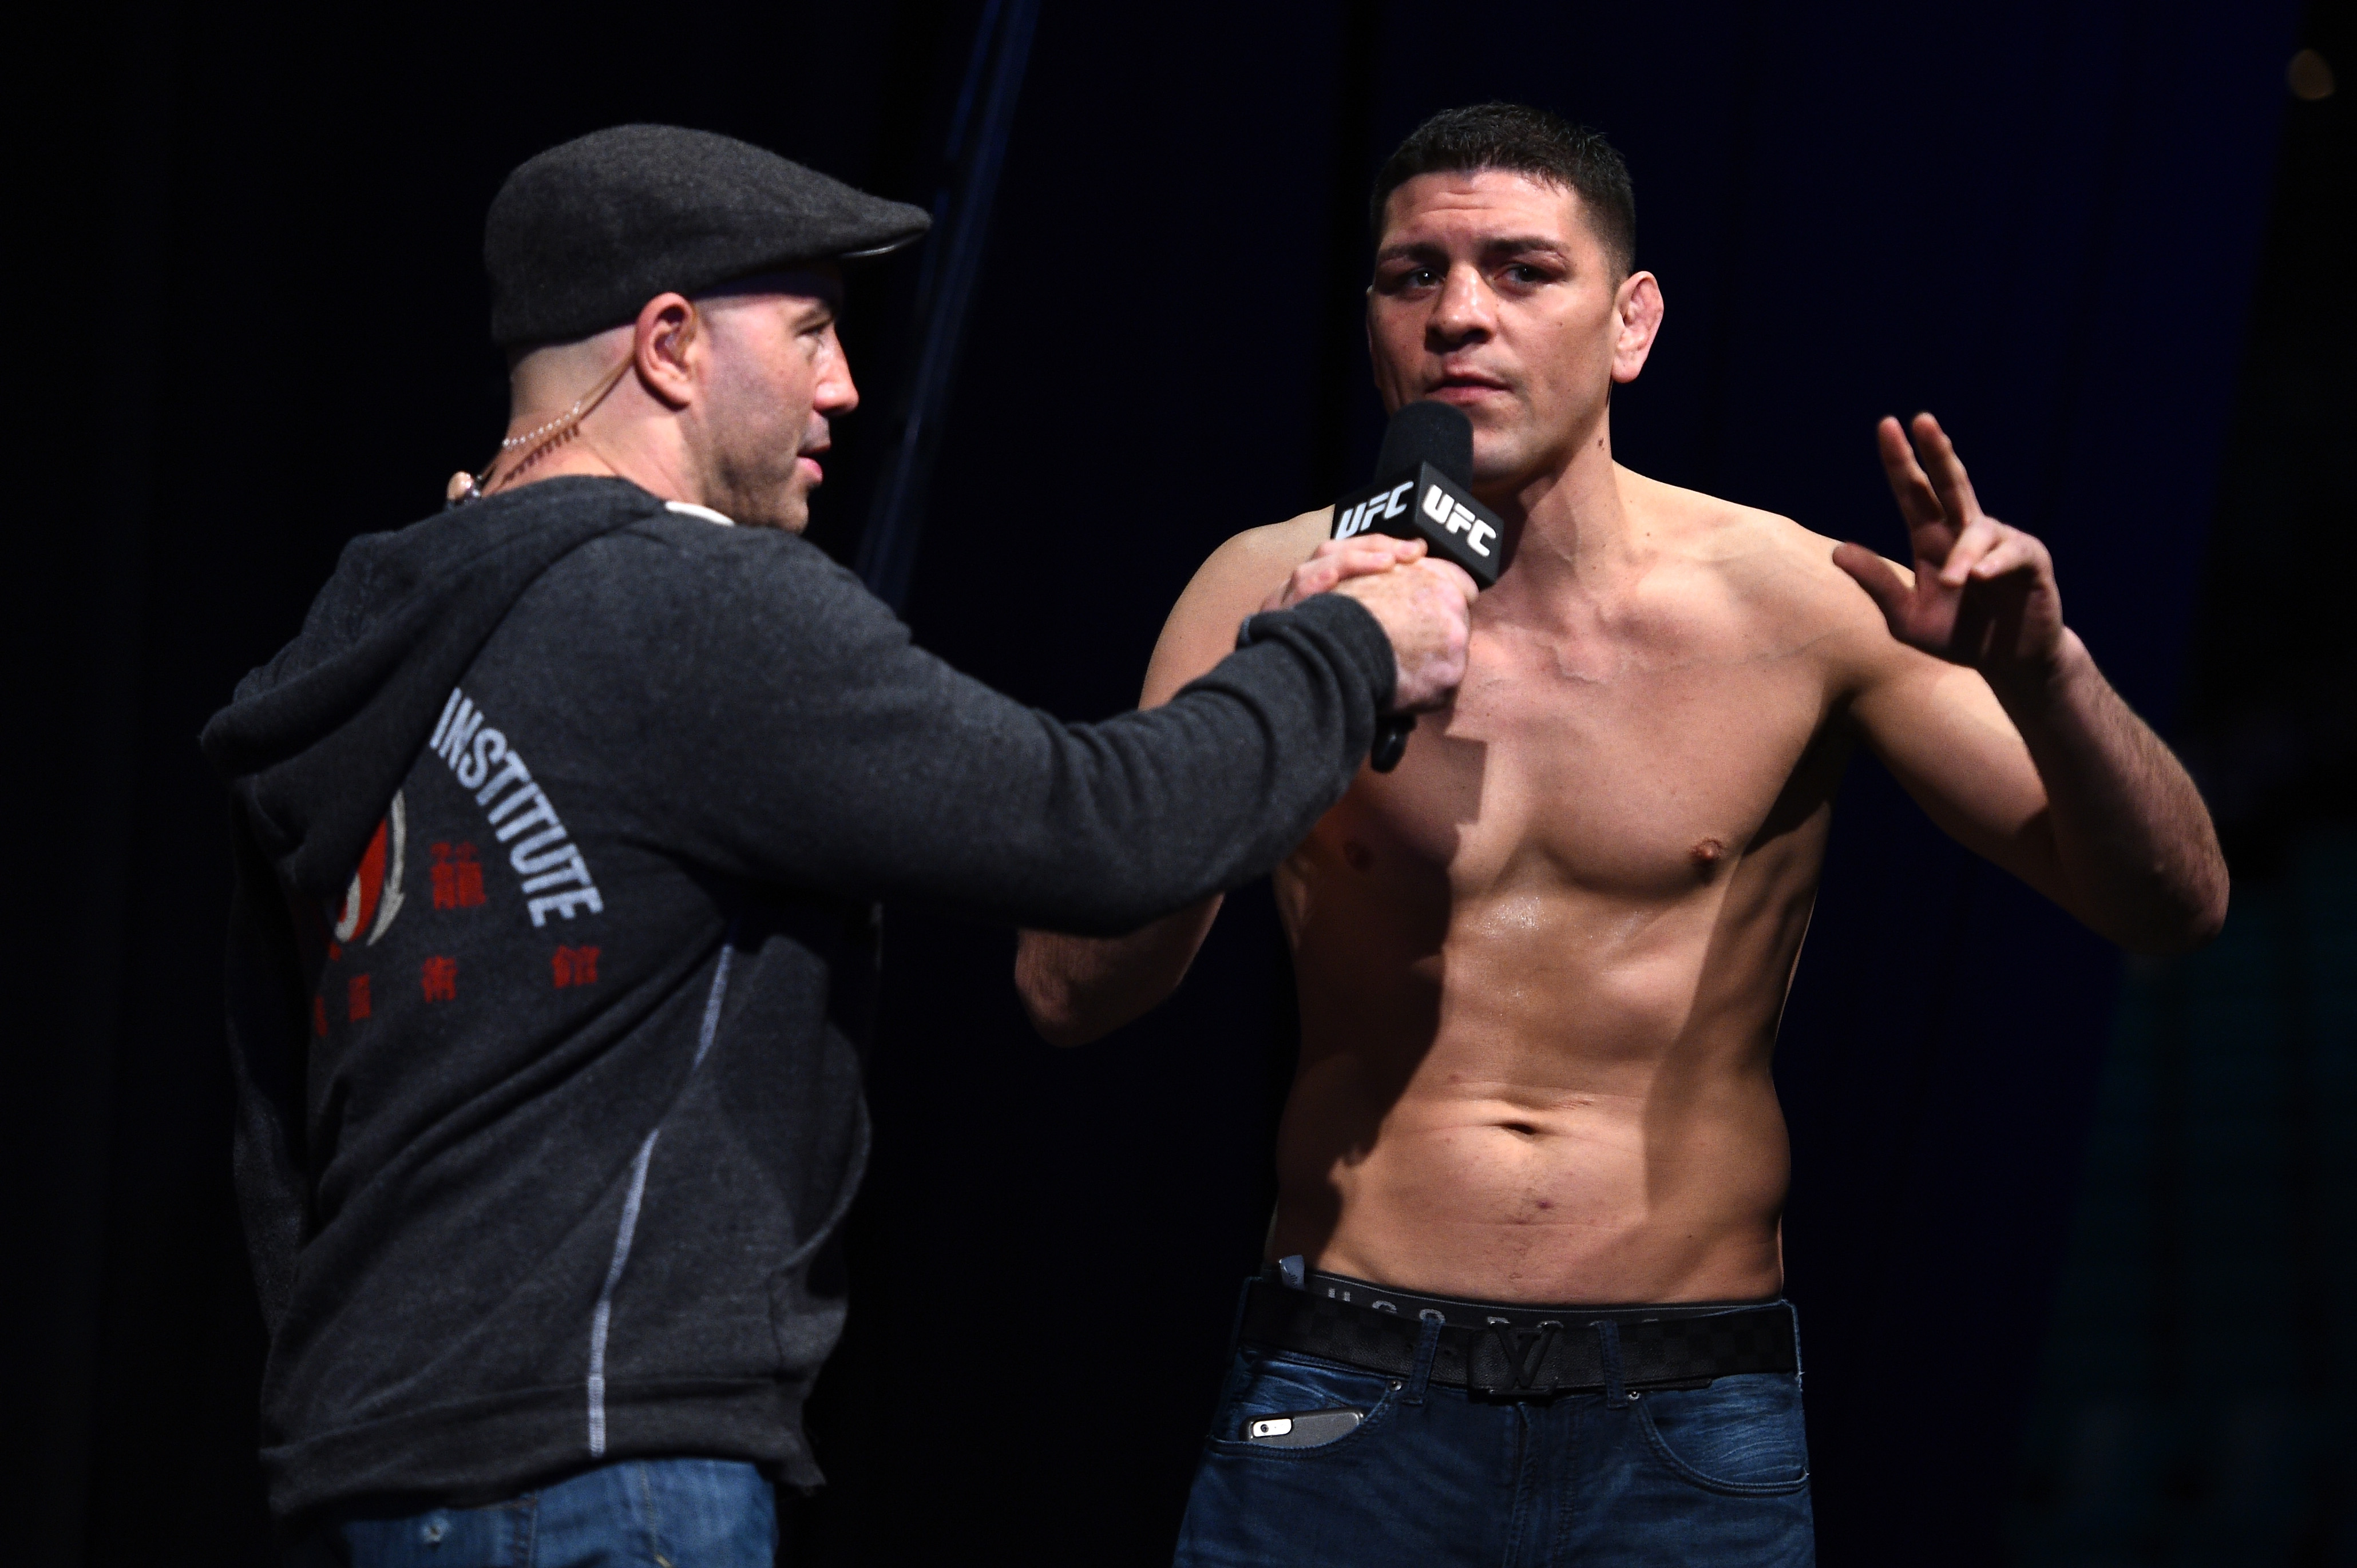 Nick Diaz at the UFC 183 weigh ins in 2015.